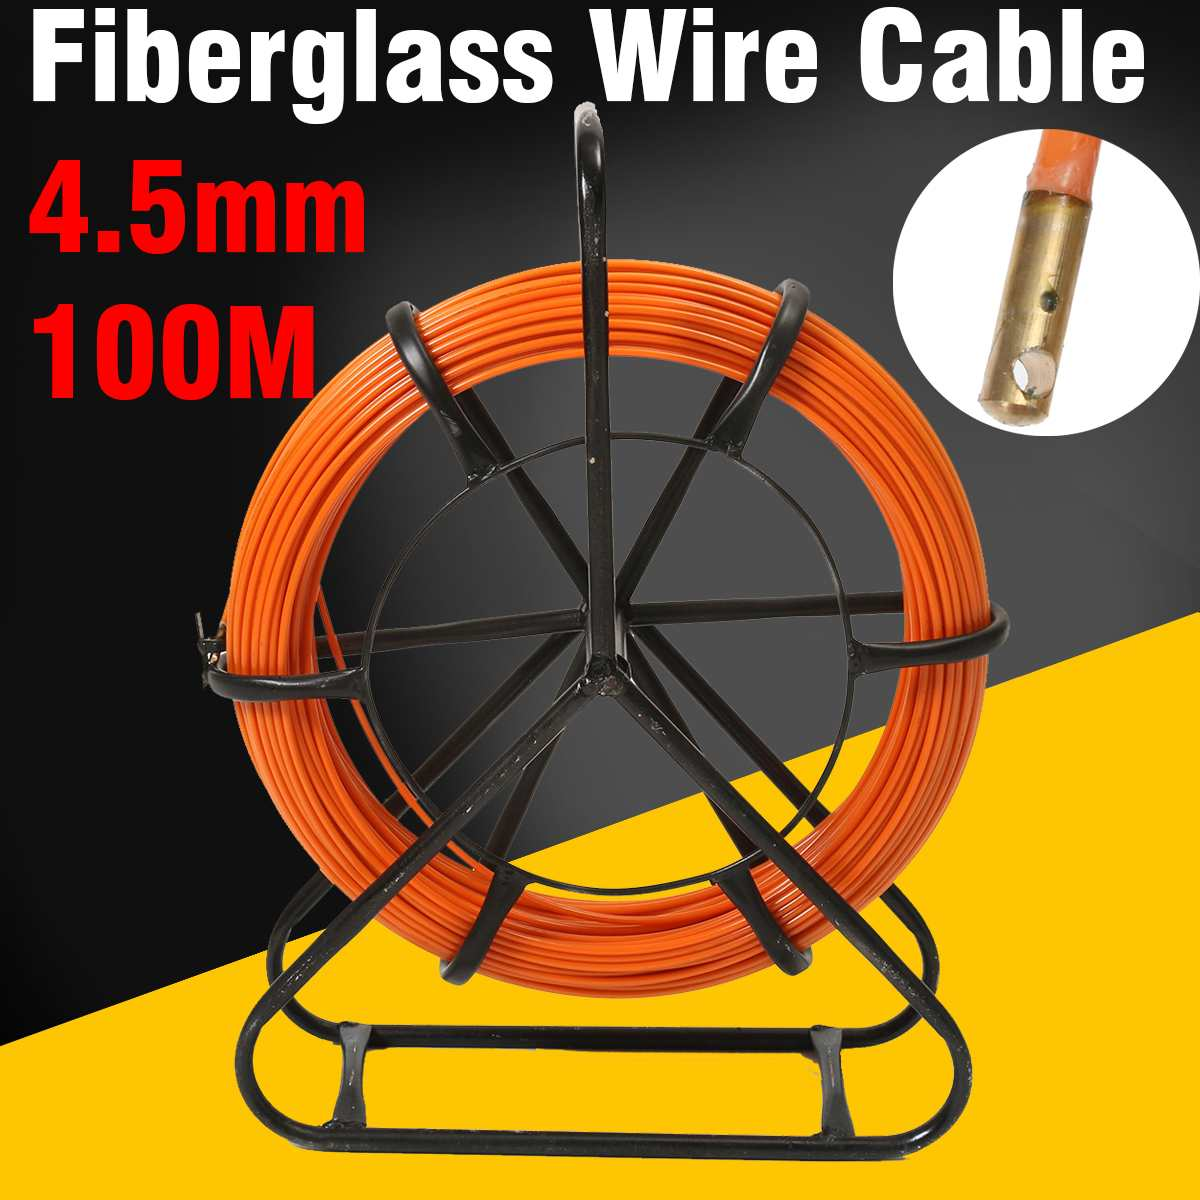 Amiable 4.5mm 100m Fiberglass Wire Cable Running Rod Snake Fish Rodder Puller Flexi Lead Electric Fiberglass Wire Cable Running Rod Home Improvement